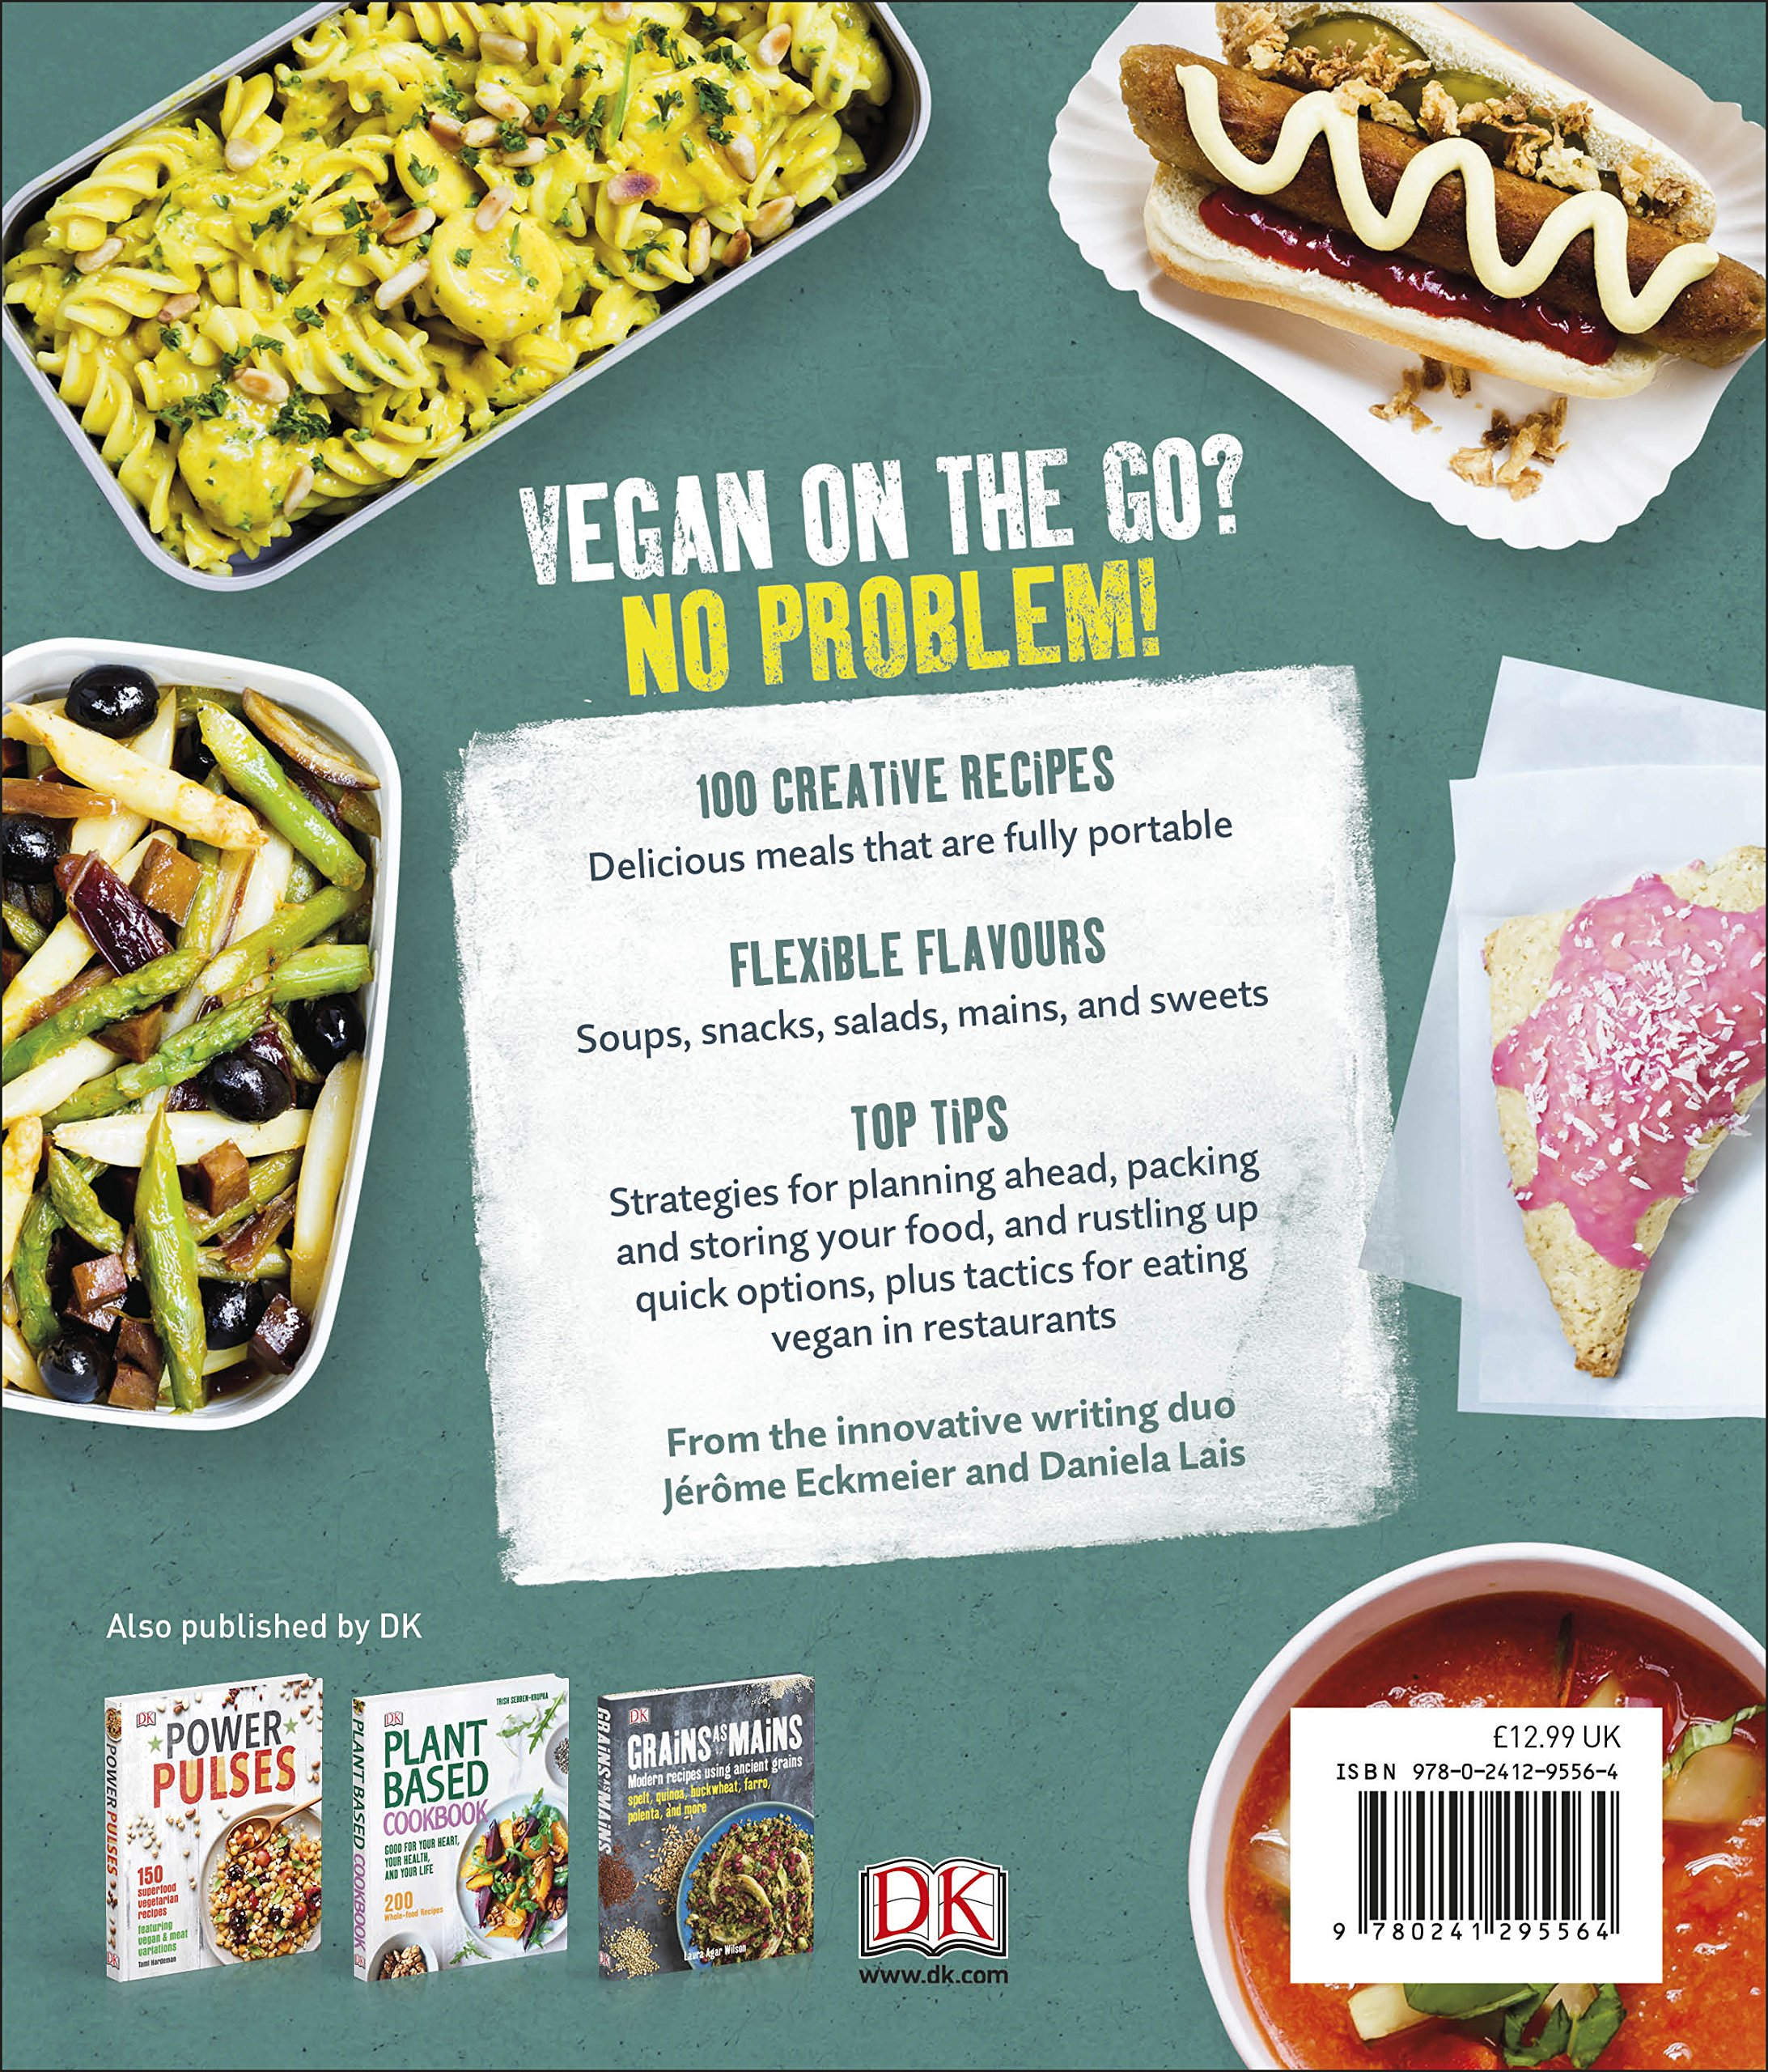 Vegan on the Go: Fast, Easy, Affordable―Anytime, Anywhere 3